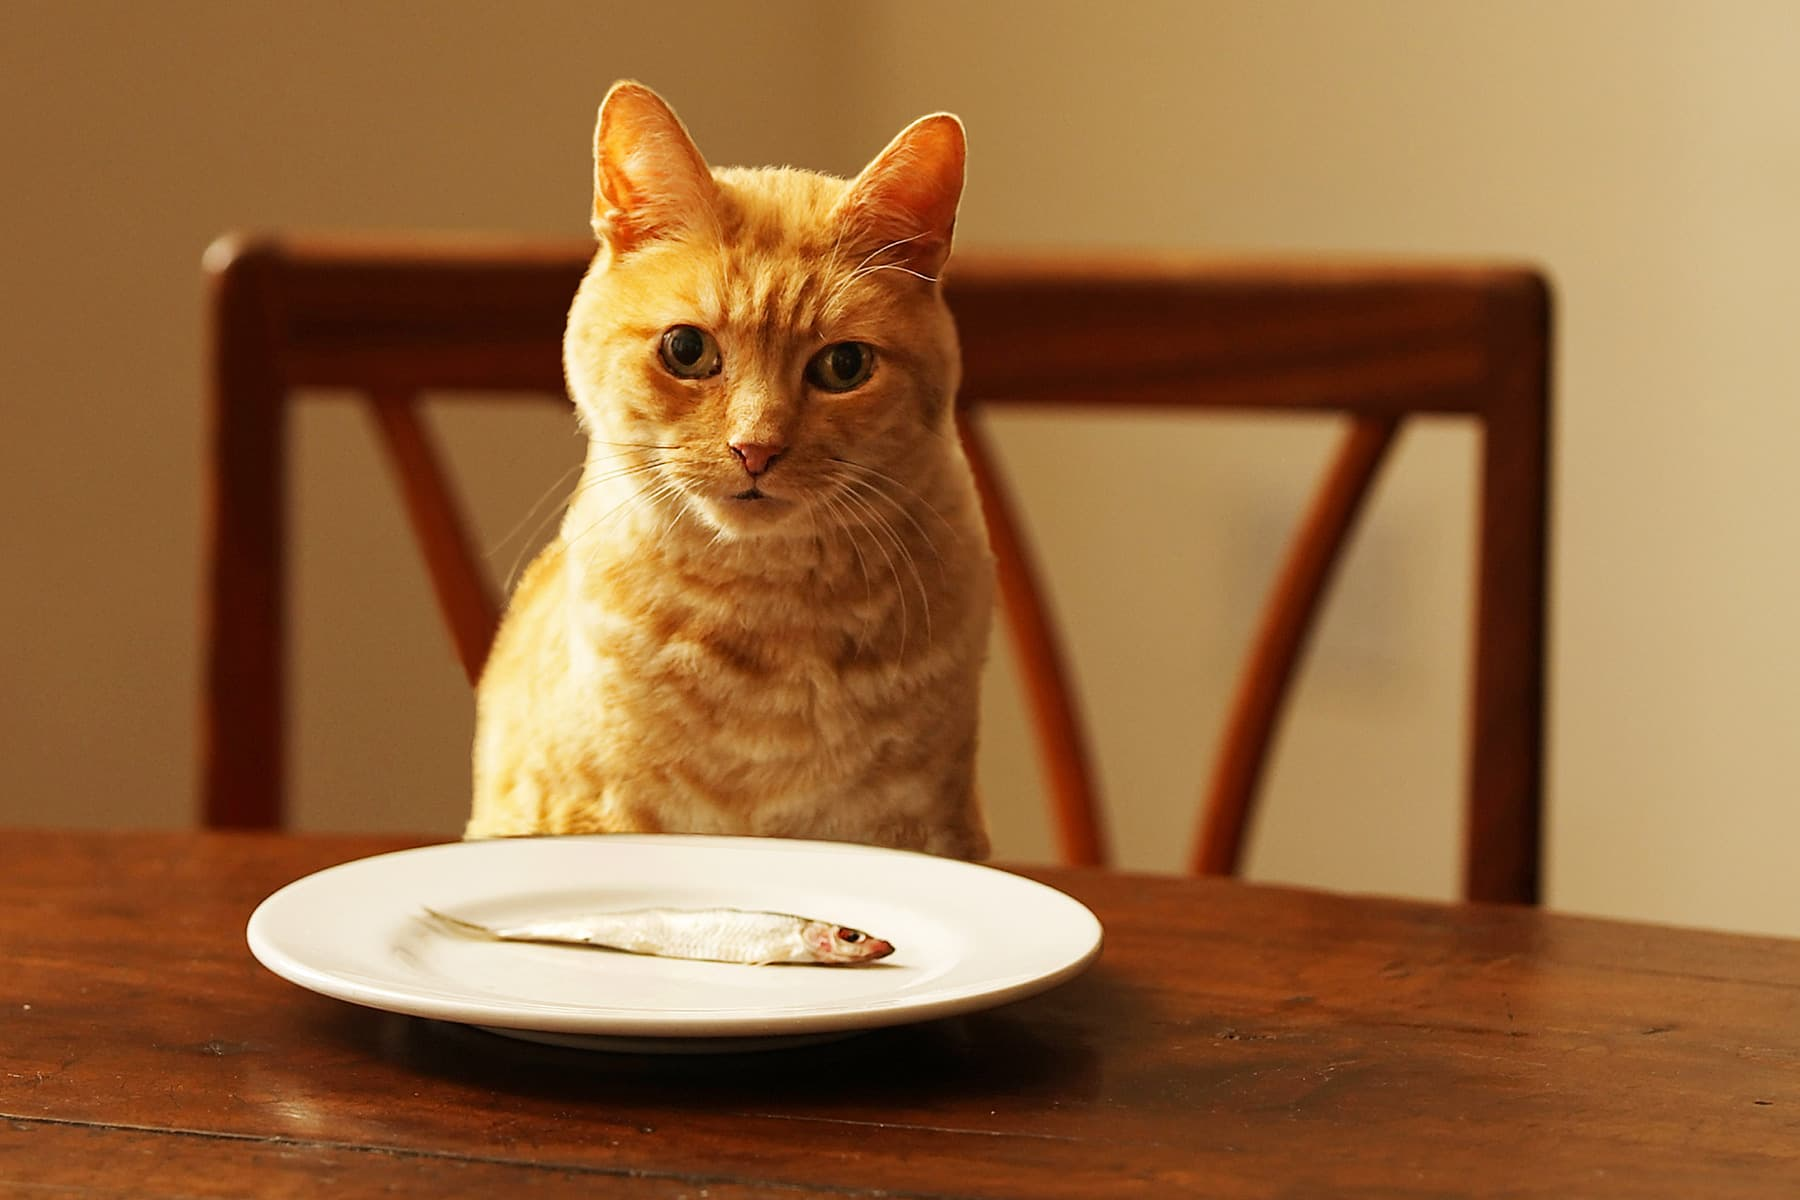 how.many times should.a.cat be fed raw diet